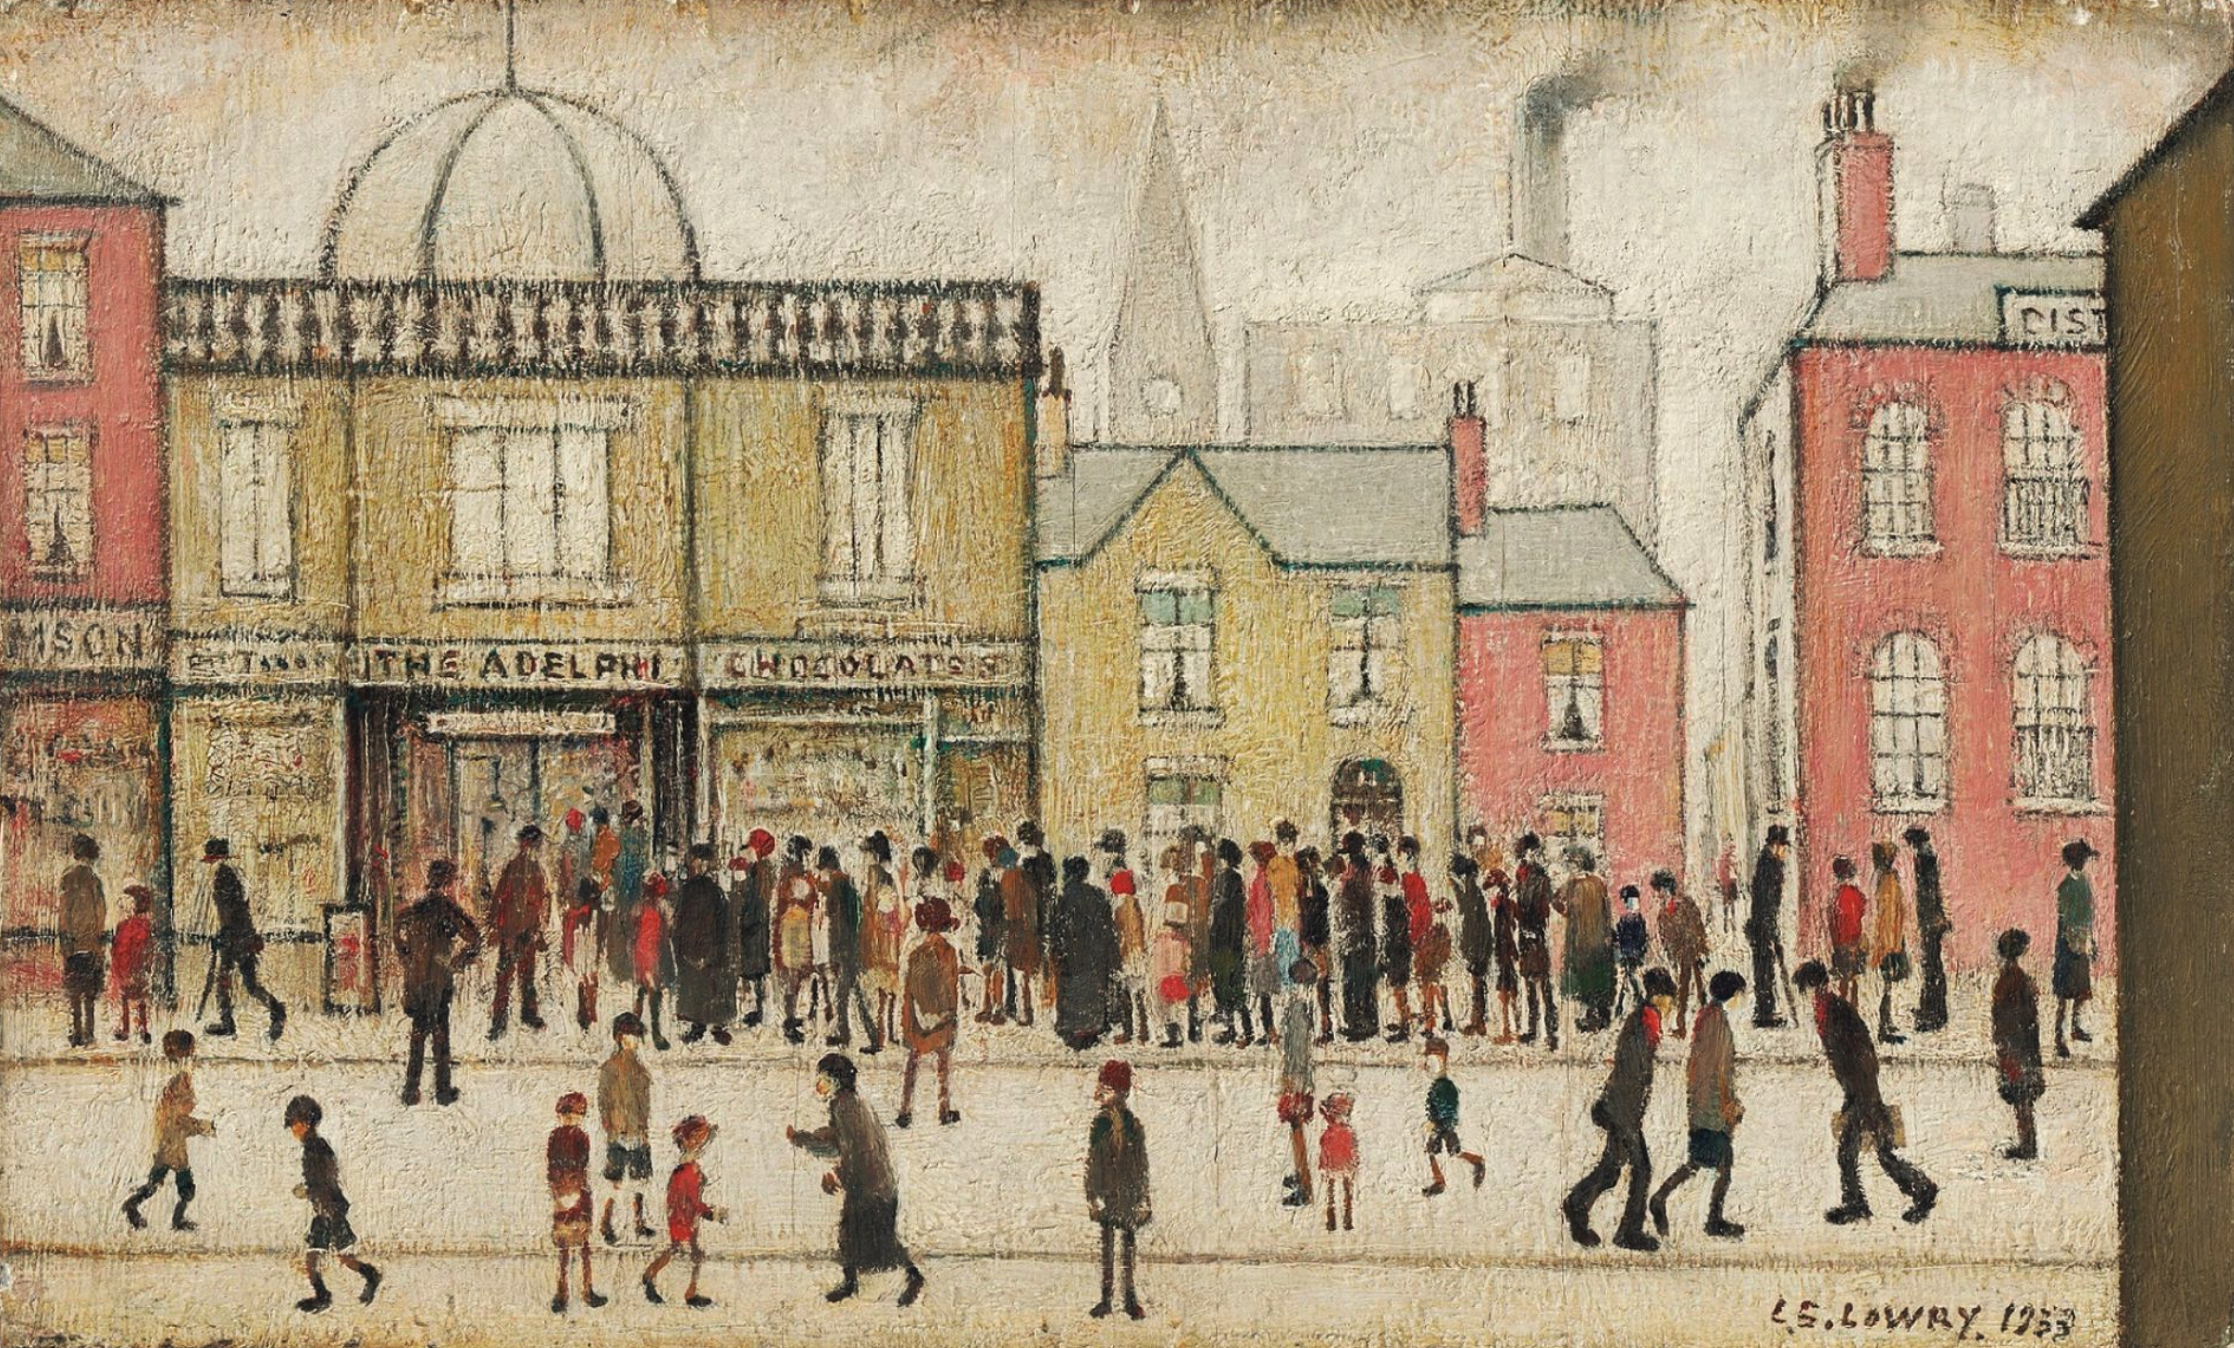 The Adelphi (Huddersfield, West Yorkshire) (1933) by Laurence Stephen Lowry (1887 - 1976), English artist.